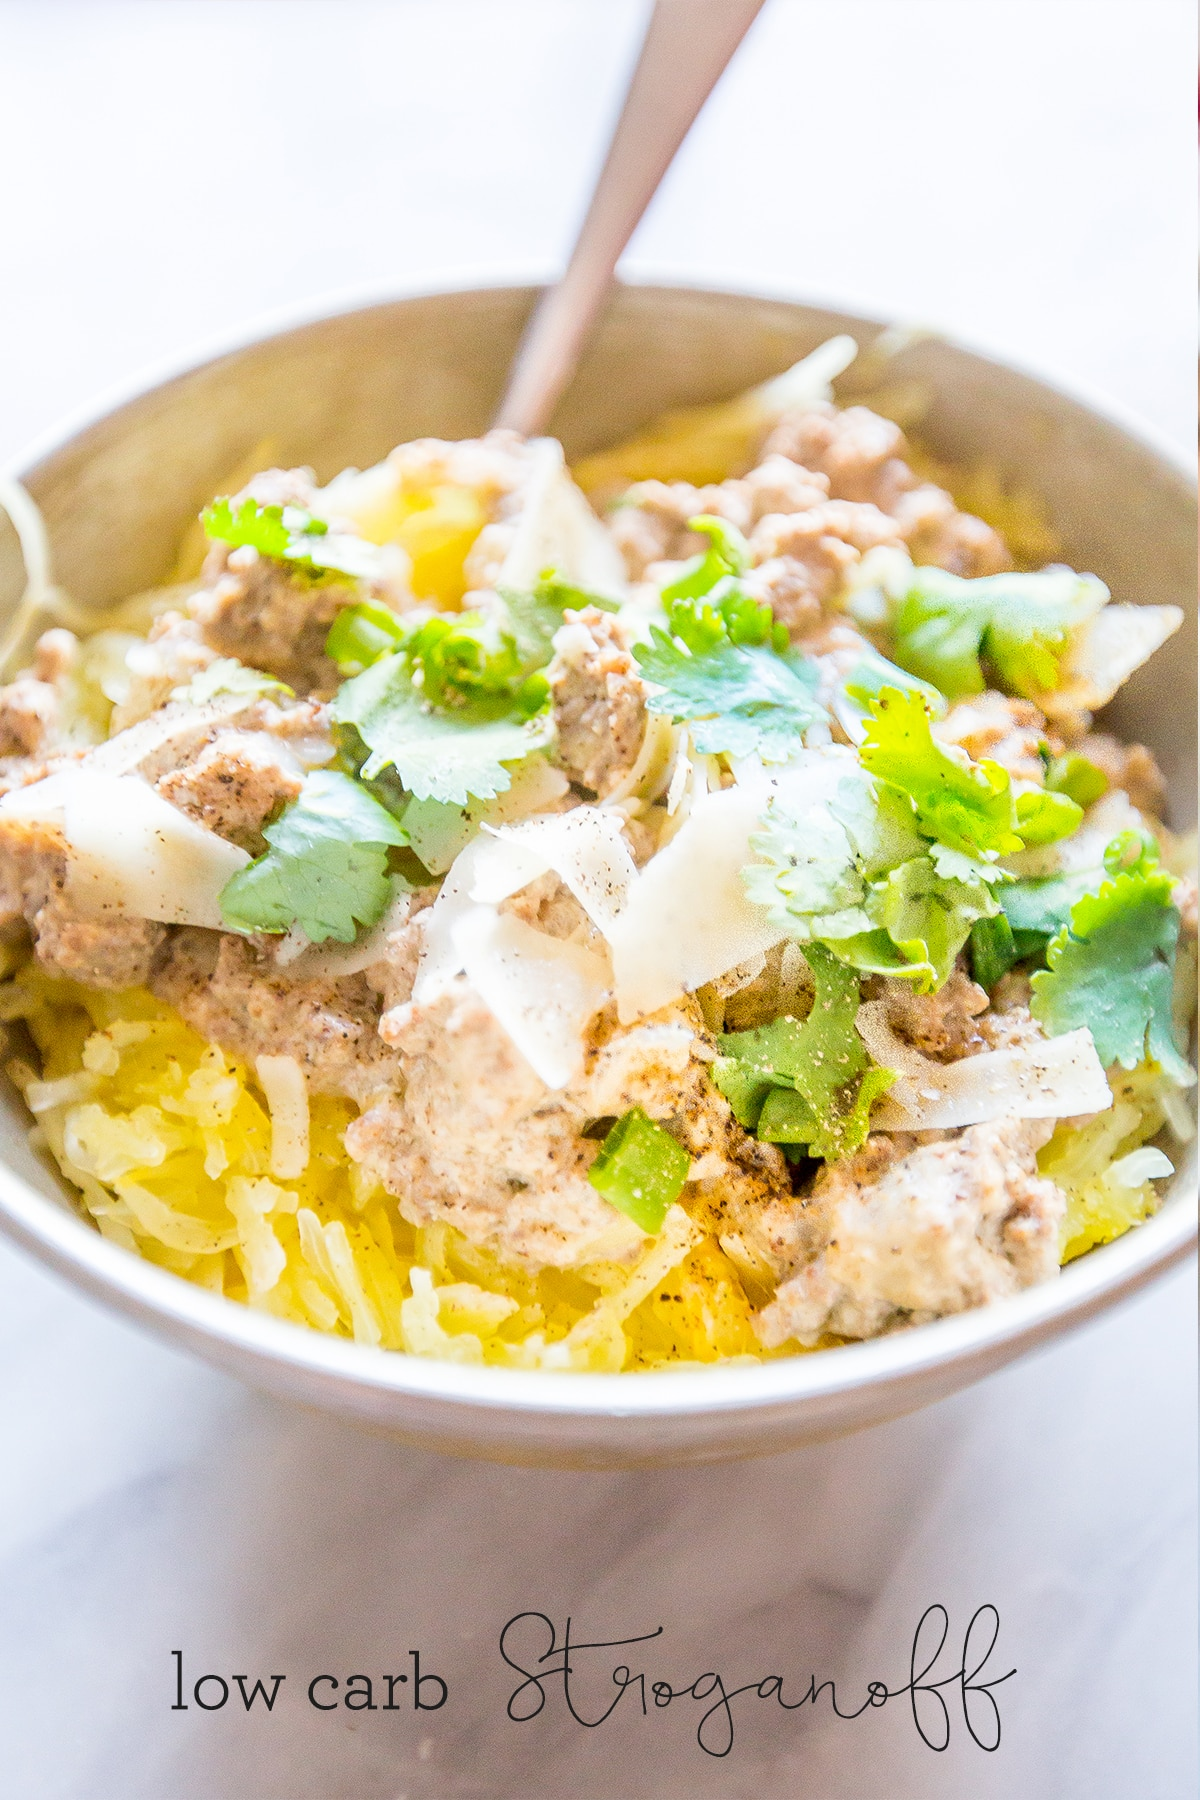 Spaghetti squash beef stroganoff- AKA the most delicious dinner ever that's actually healthy!